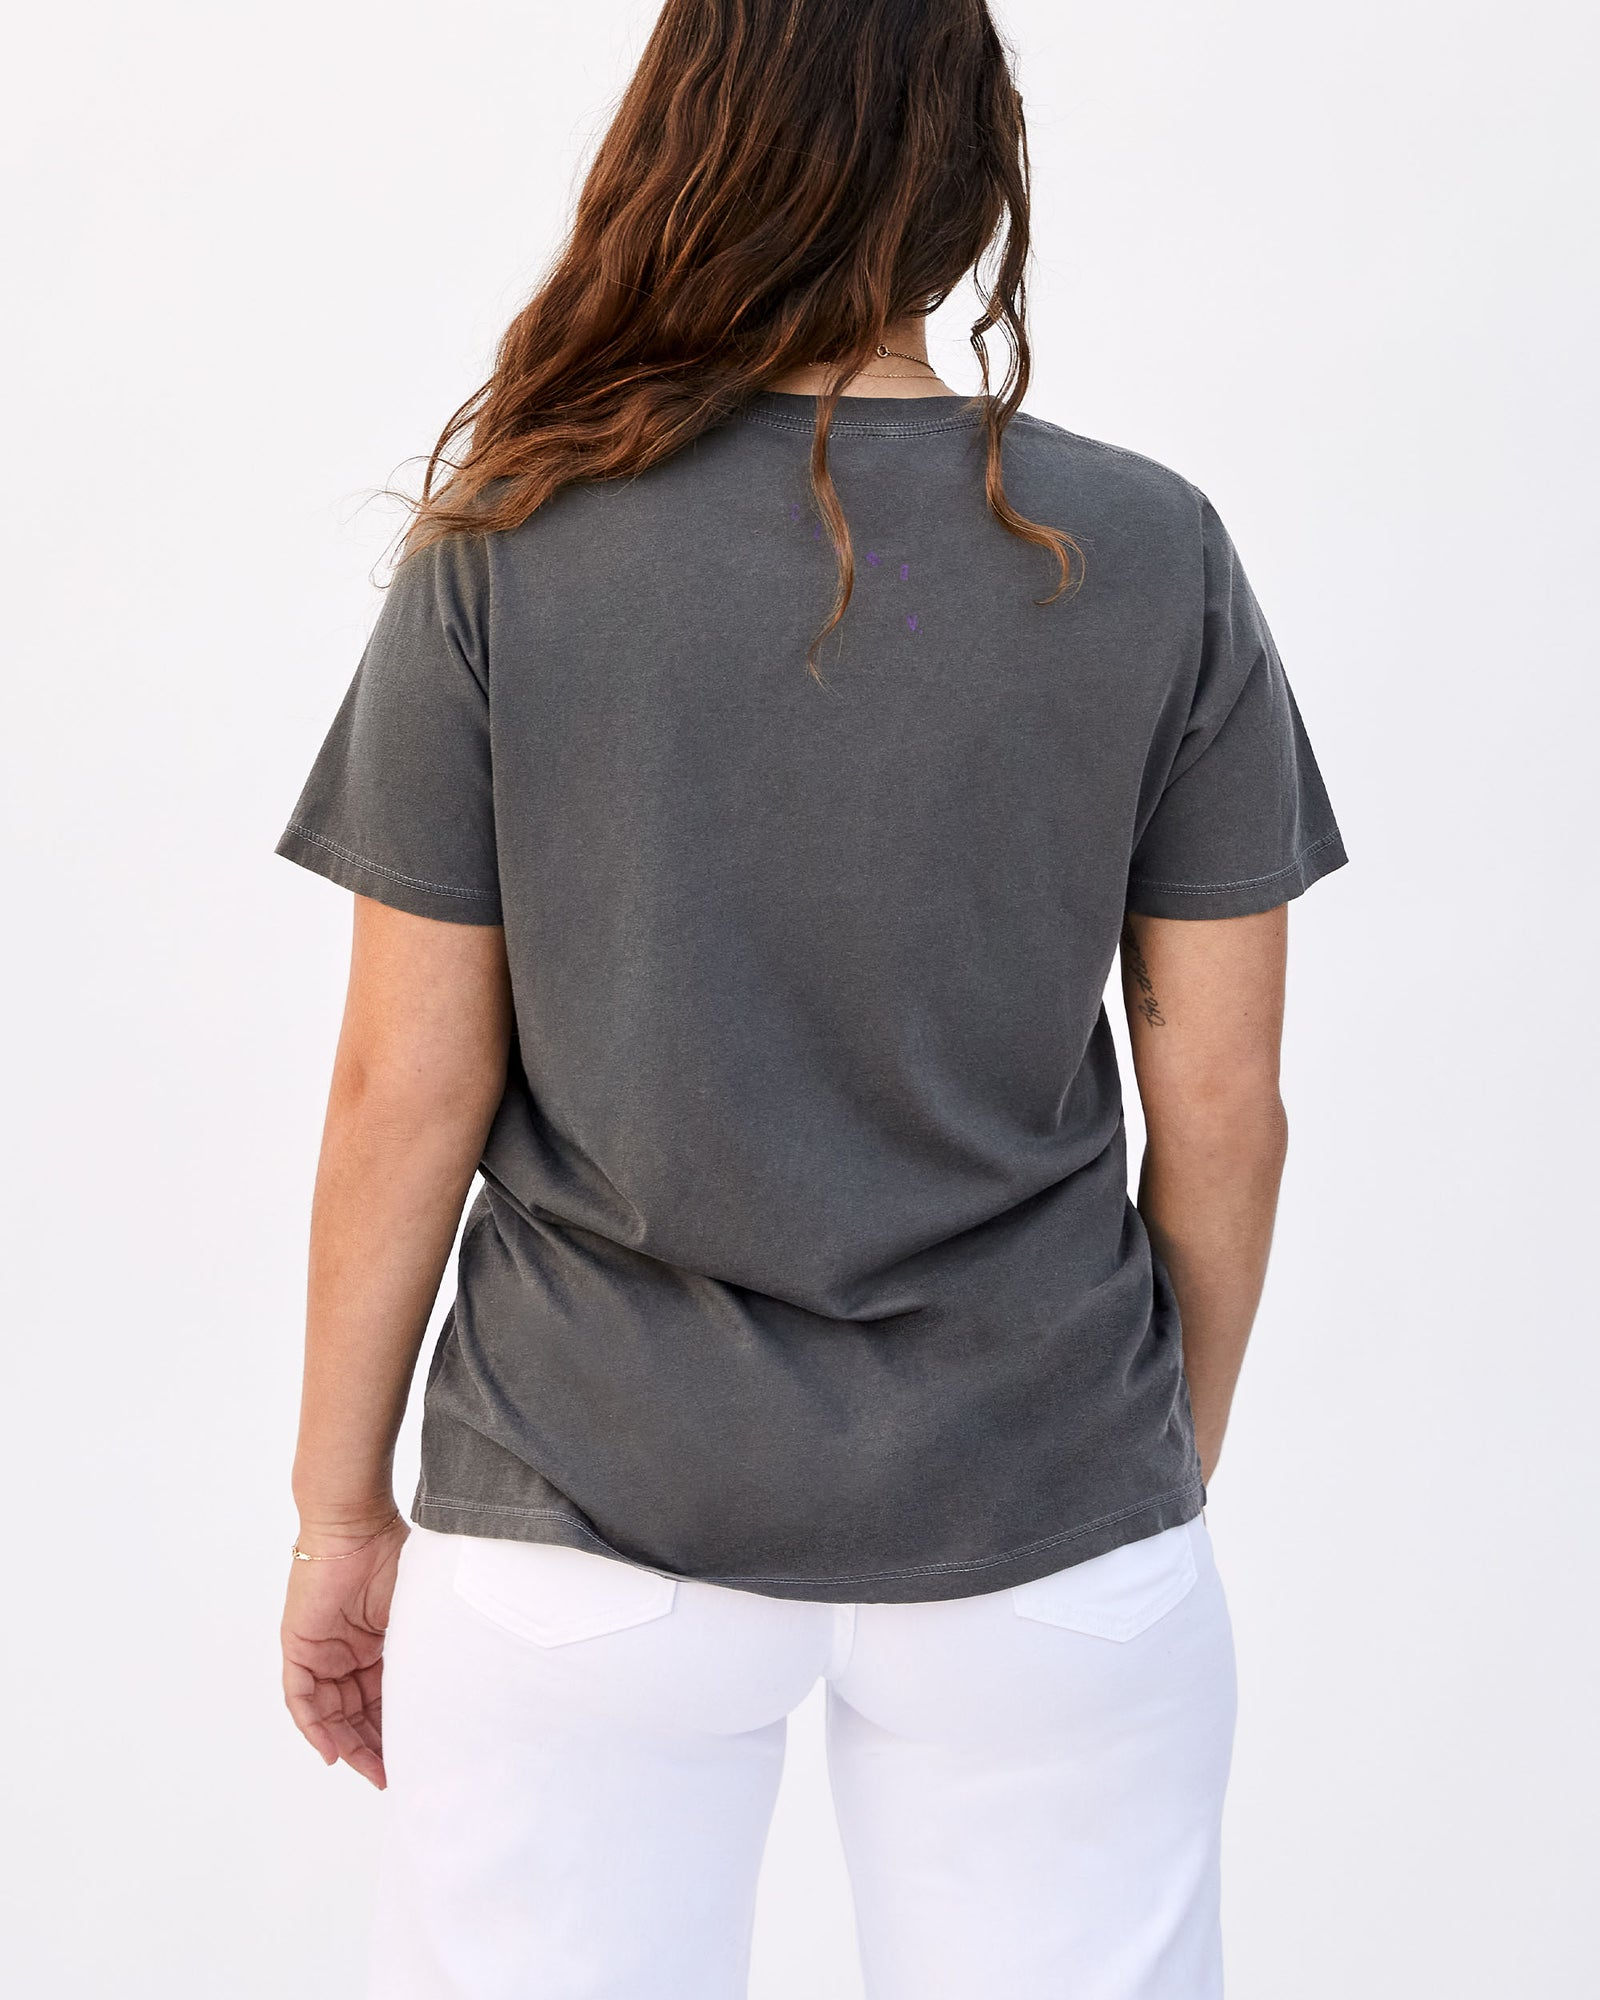 Faded Black with Iris Je Ne Sais Quoi Original Fit Tee on Abbi - Back